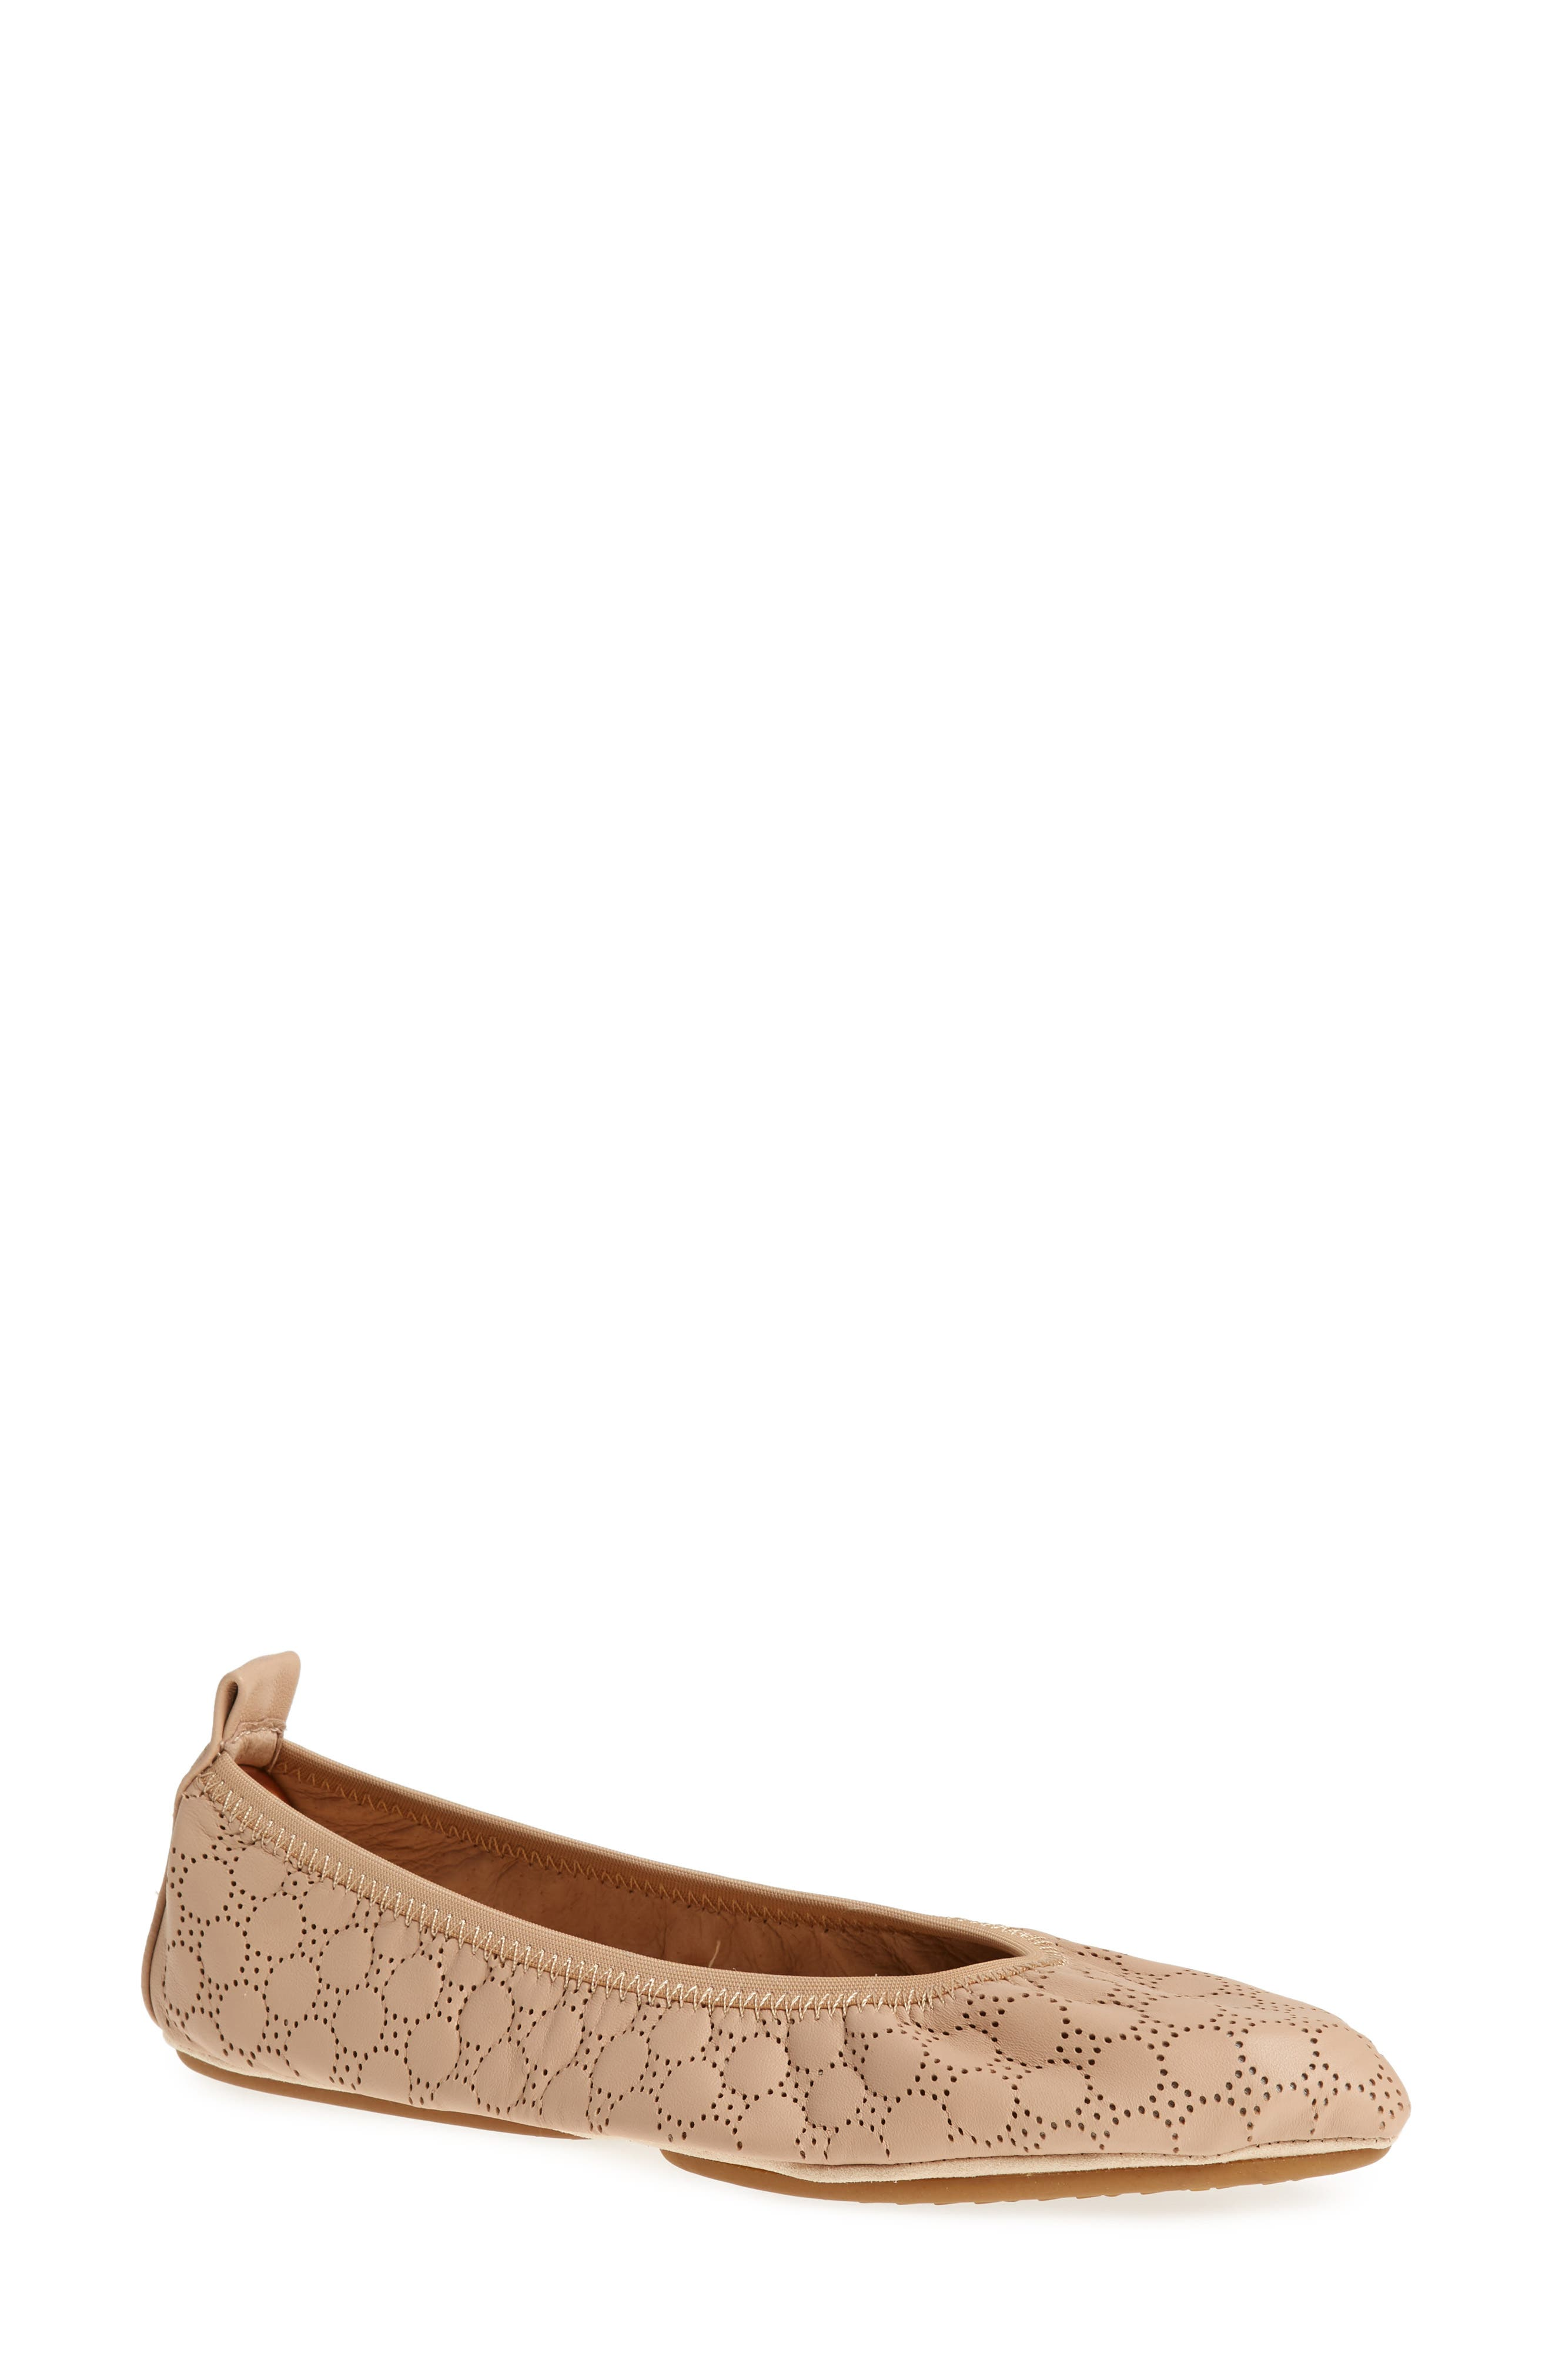 Vince Foldable Ballet Flat,                         Main,                         color, Nude Circle Perforated Leather